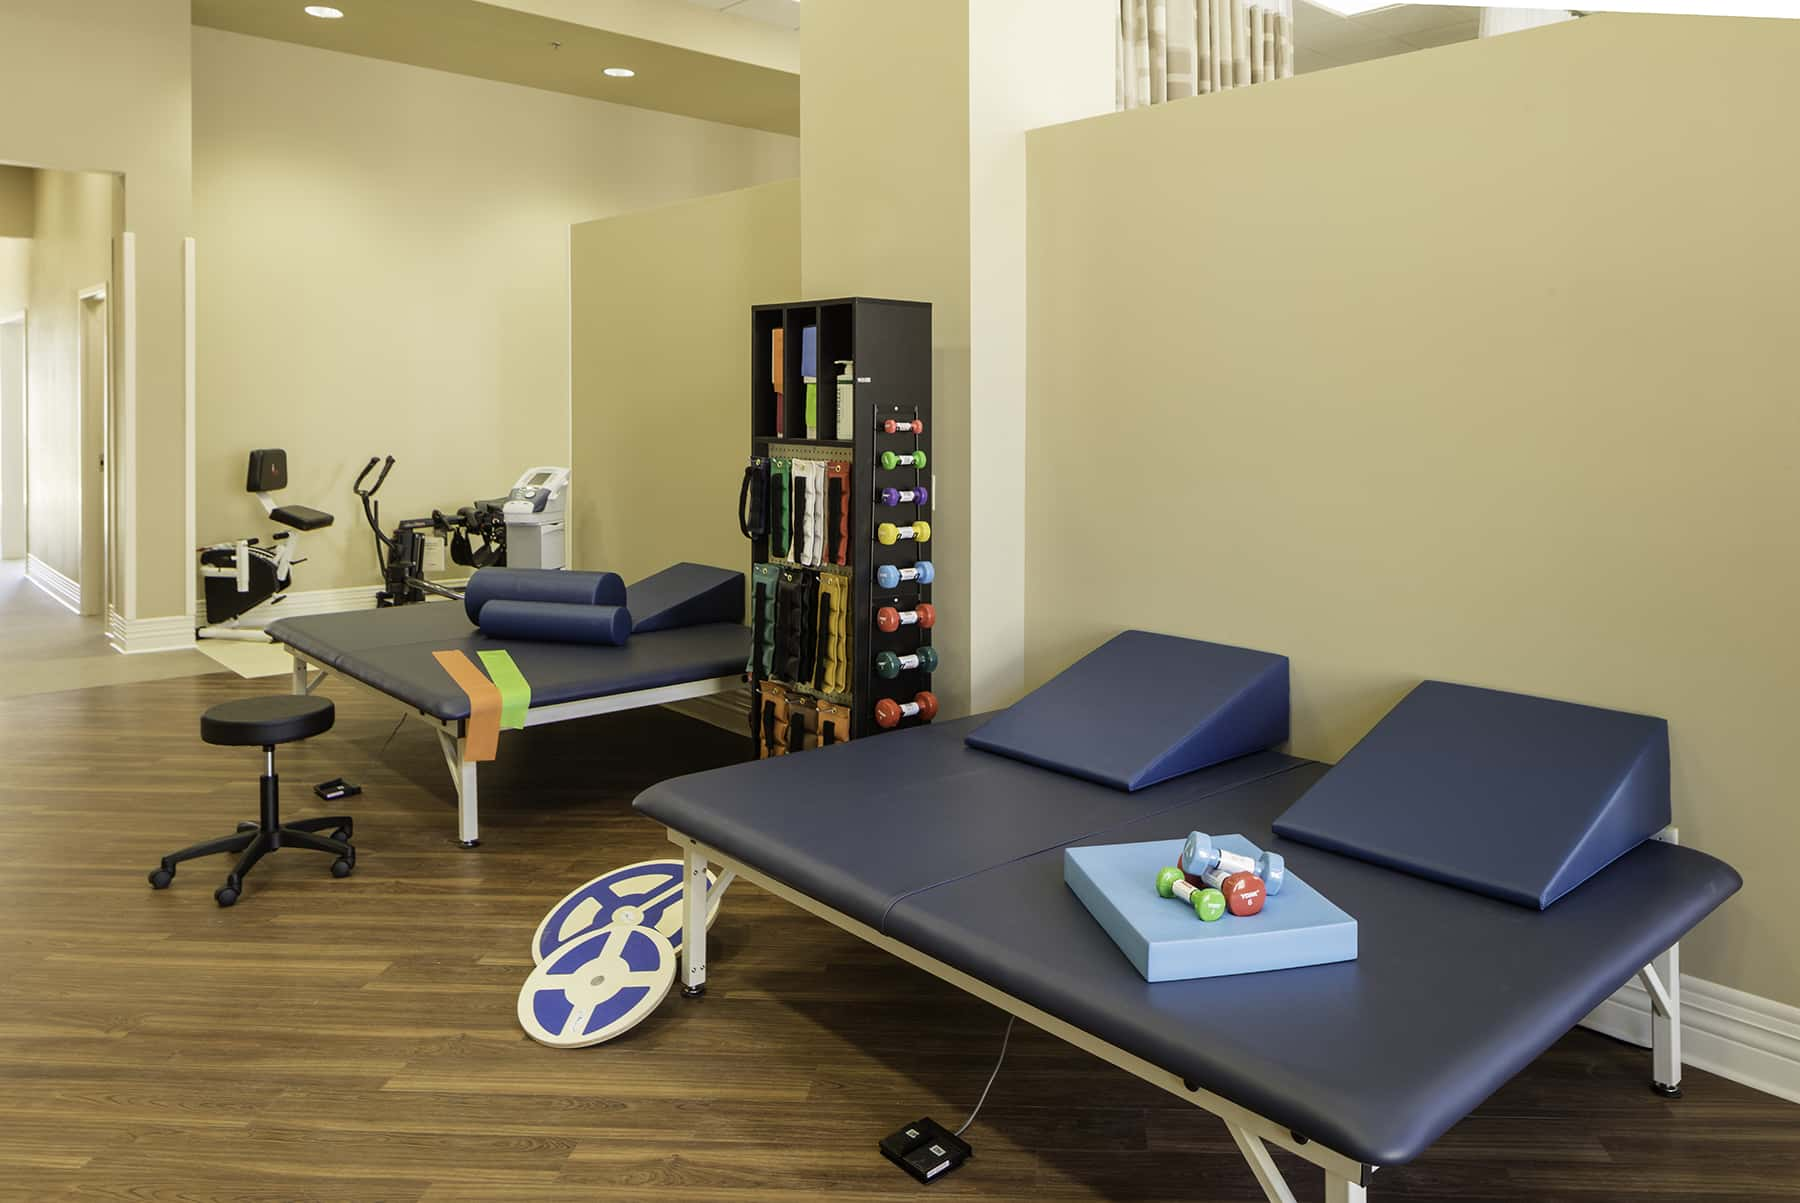 Exercise room therapy bed